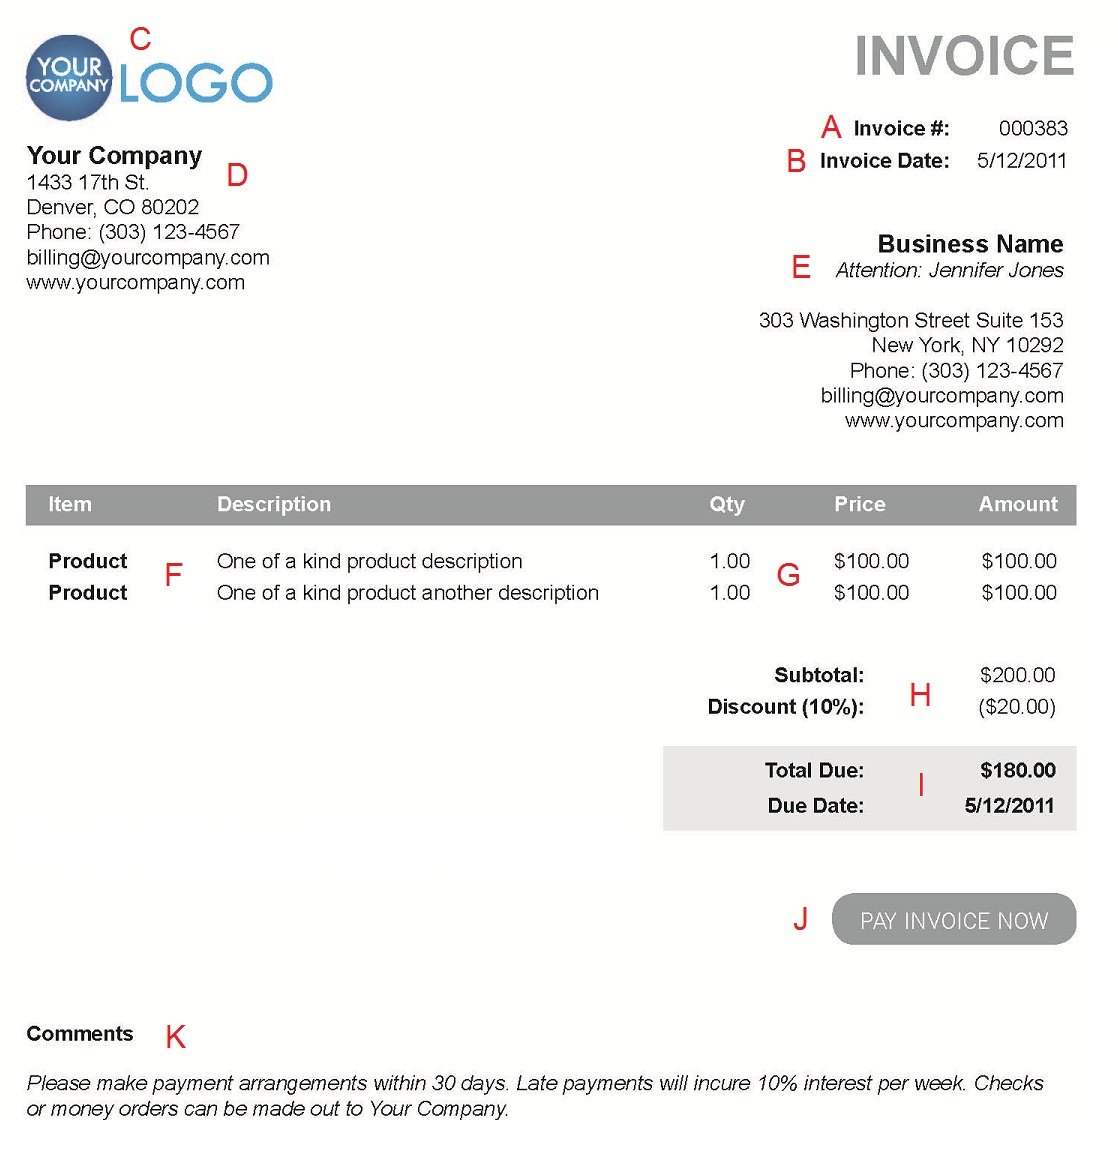 Theologygeekblogus  Personable The  Different Sections Of An Electronic Payment Invoice With Marvelous A  With Cool Invoice Template In Word Also Toyota Highlander Invoice Price In Addition Quickbooks Online Customize Invoice And Invoicing Programs As Well As Dummy Invoice Additionally Invoice Numbers From Paysimplecom With Theologygeekblogus  Marvelous The  Different Sections Of An Electronic Payment Invoice With Cool A  And Personable Invoice Template In Word Also Toyota Highlander Invoice Price In Addition Quickbooks Online Customize Invoice From Paysimplecom